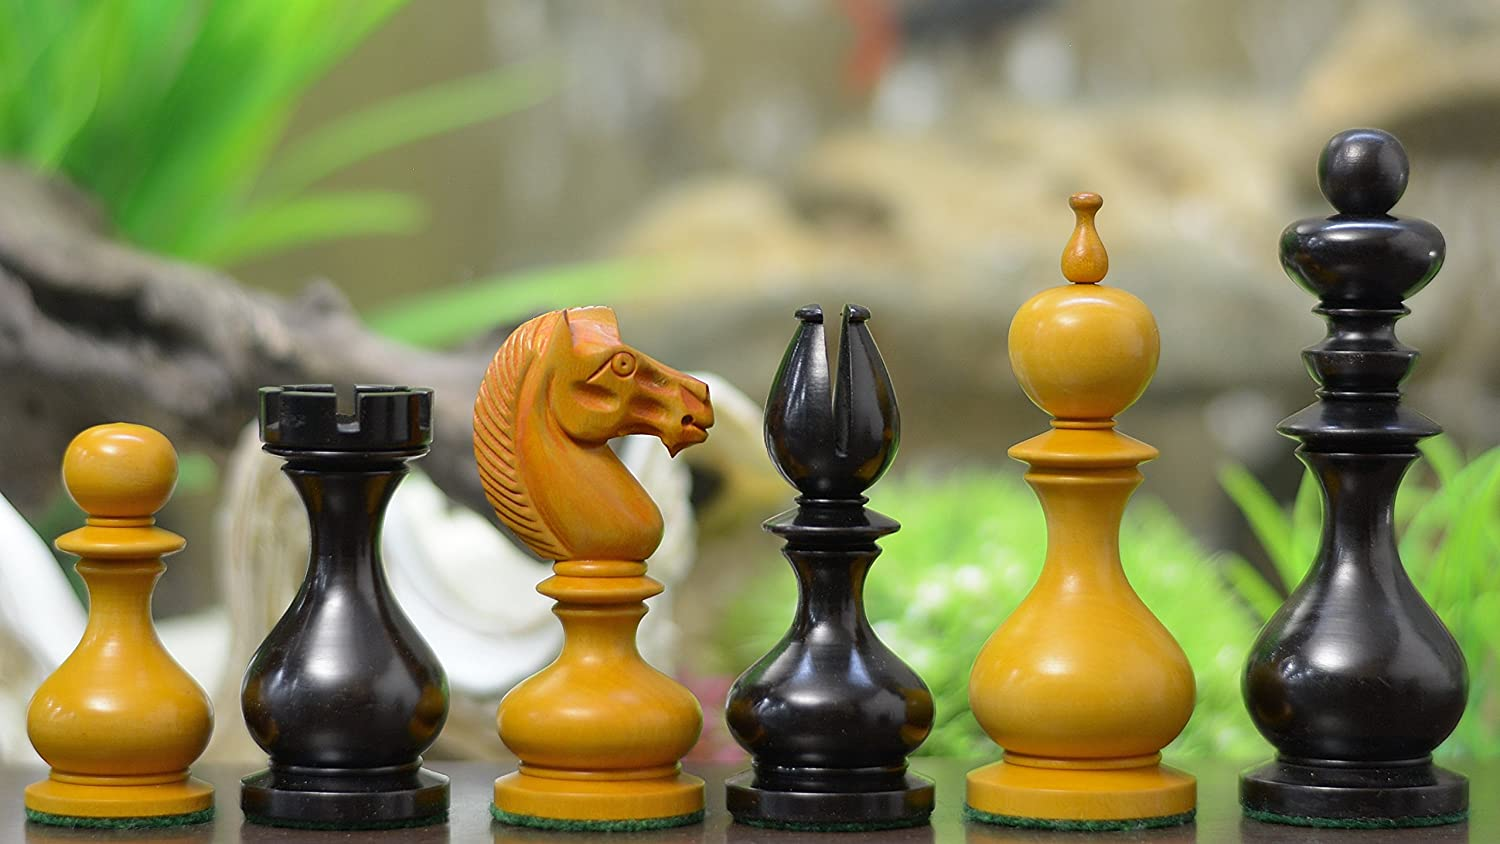 Chessbazaar Reproduced Antique Series Stained Calgreen Chess Pieces In Dyed Box Wood